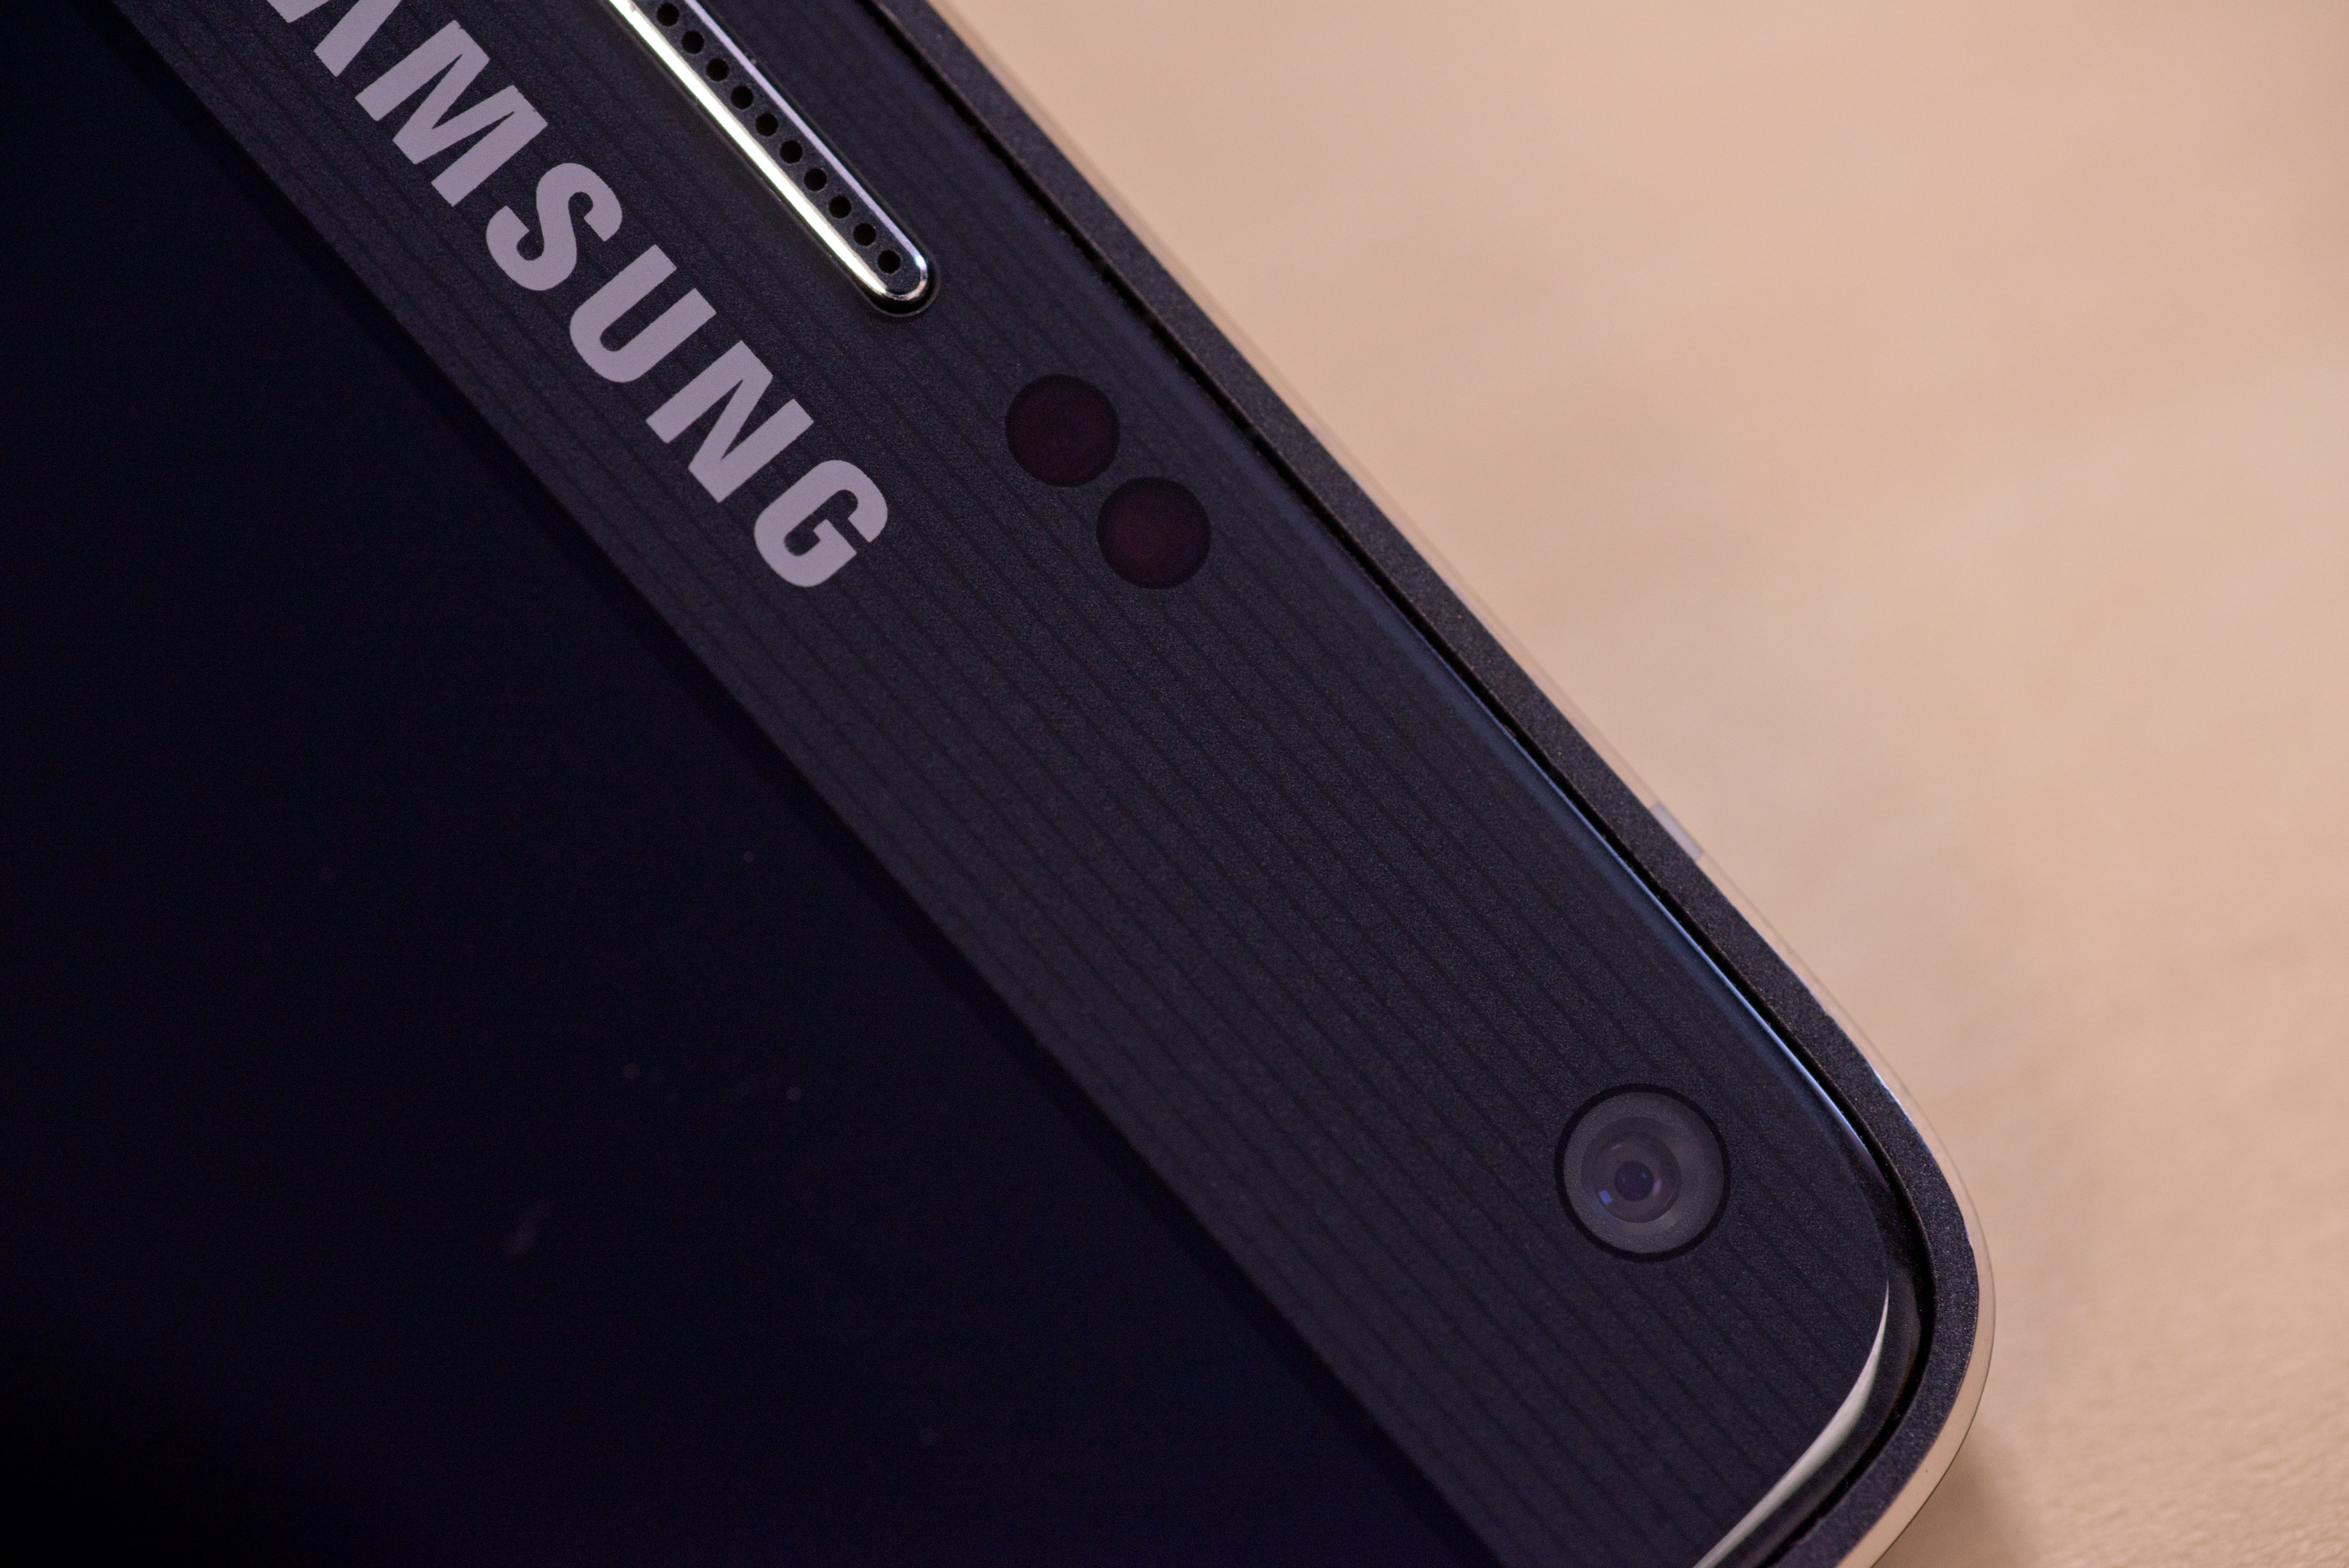 A photograph of the Samsung Galaxy Note 4's earpiece and user-facing camera.